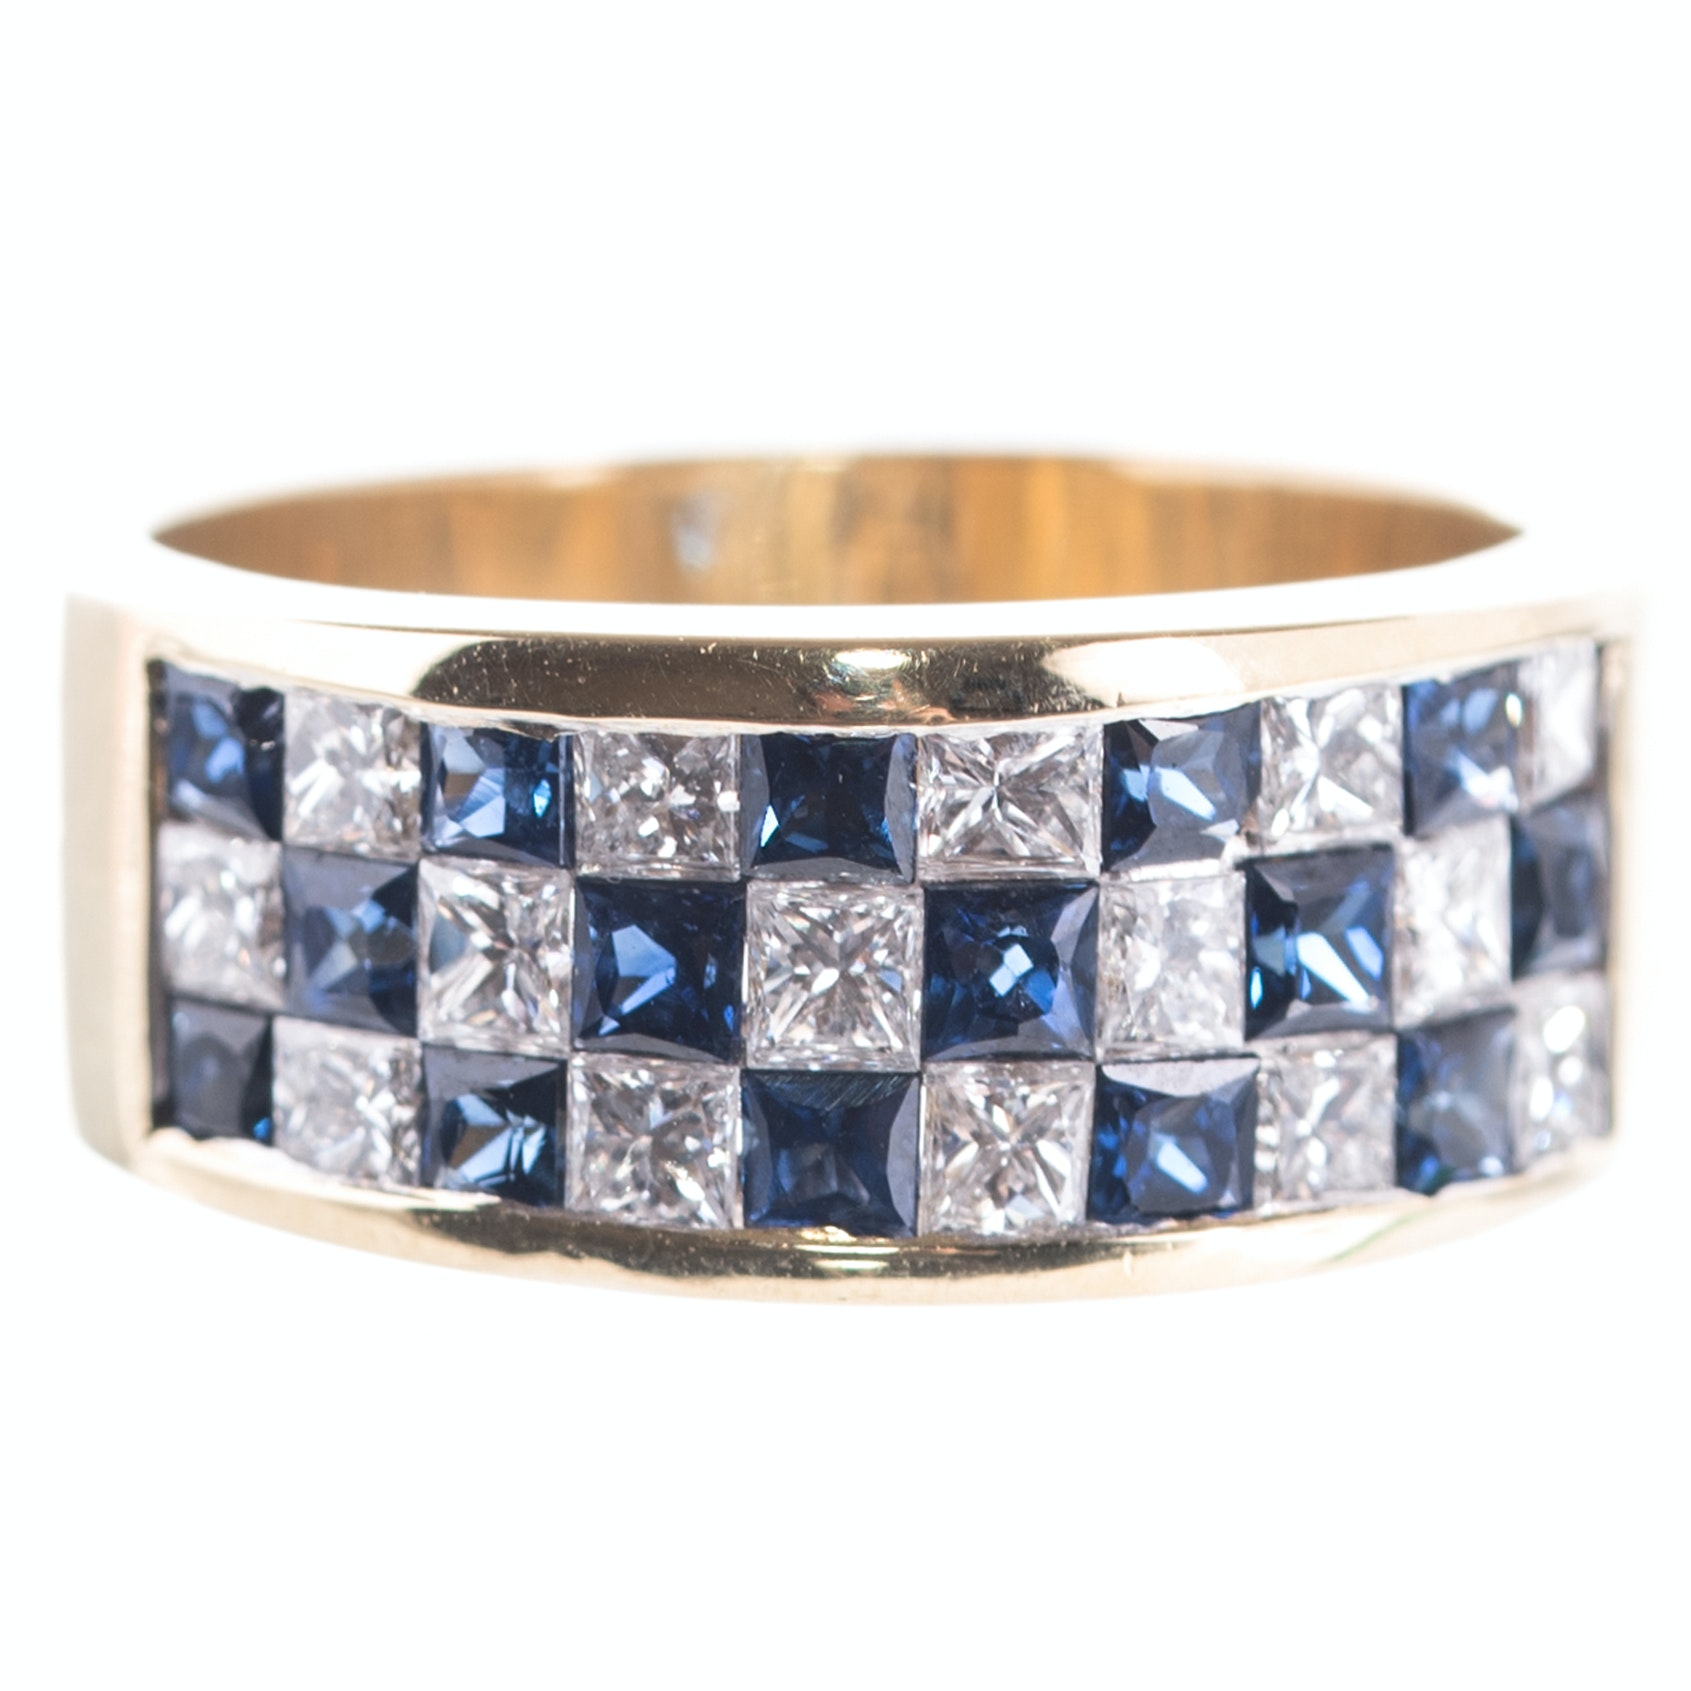 18K Yellow Gold, 1.05 CTW Diamond, and Sapphire Ring